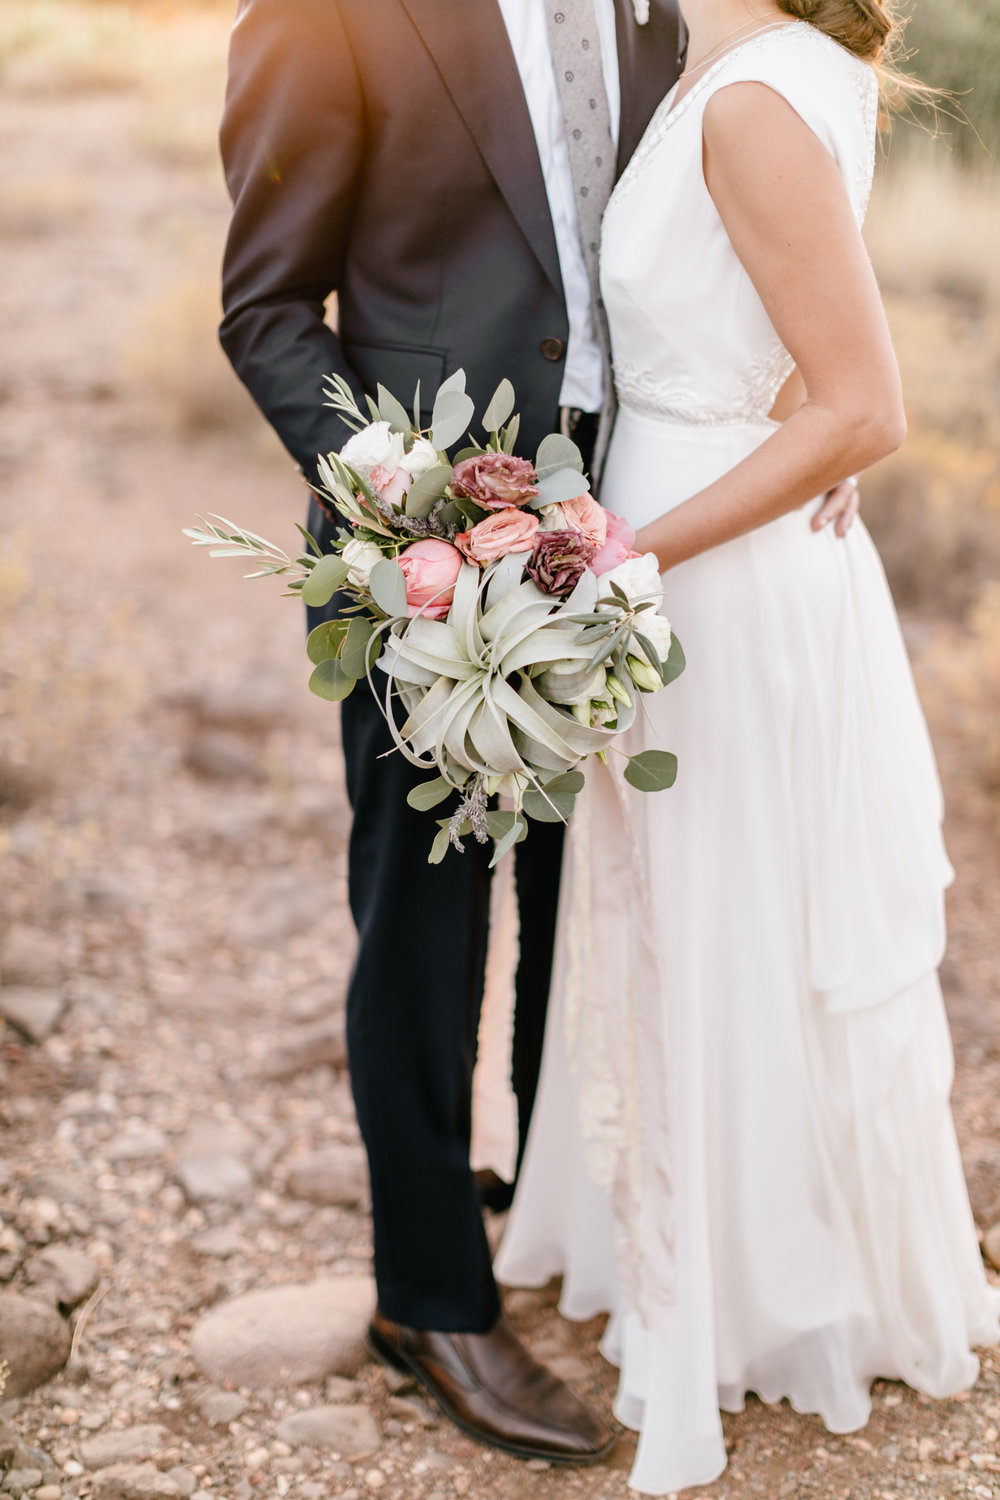 An Intimate Sedona Wedding Nestled in the Arizona Red Rocks  - Tremaine Ranch - AZ Arizona Wedding & Event, Vintage, Furniture, Tableware, & Specialty Rentals in Phoenix, Tucson, Flagstaff, Sedona, Tempe, Chandler, Mesa, Gilbert, Prescott, Payson 5176.jpg